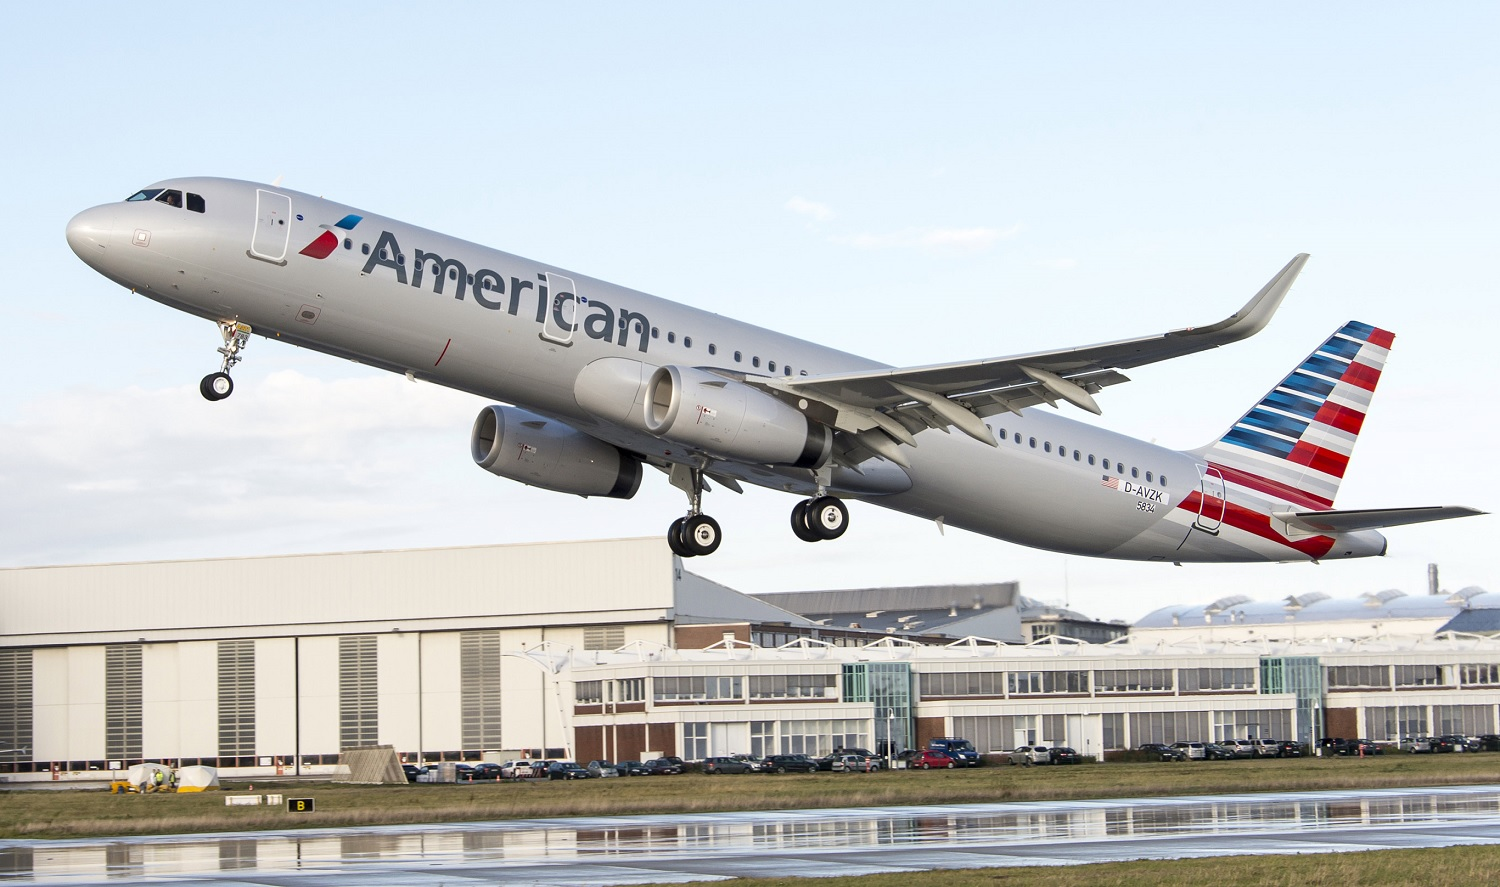 American Airlines: A321T | FactoryTwoFour